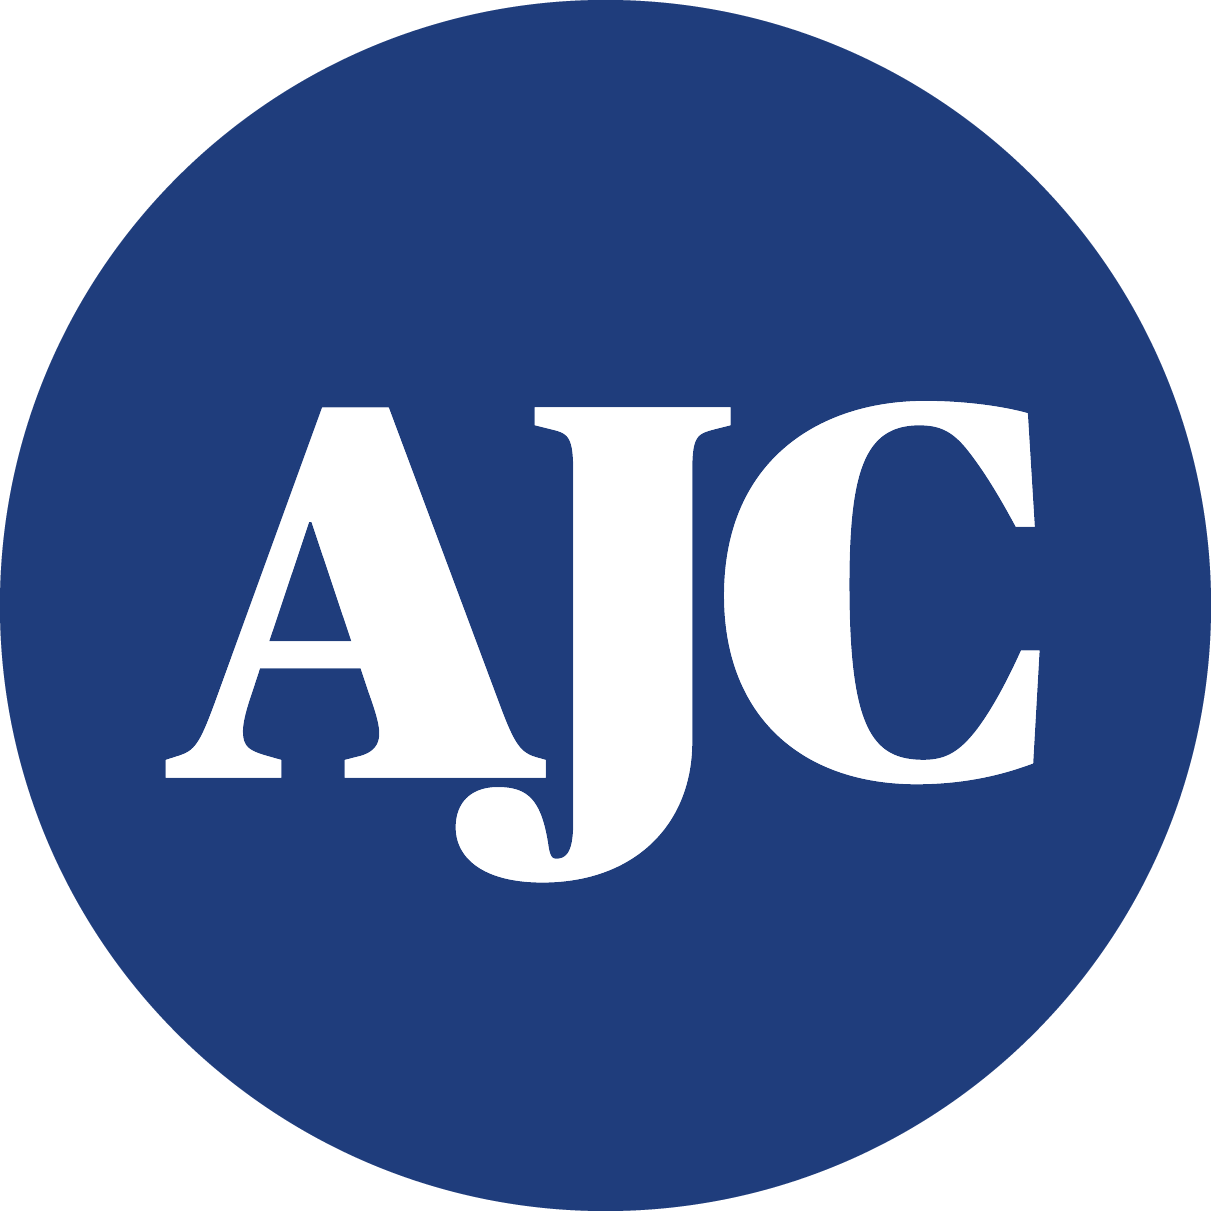 AJC names Crave Pie Studio as one of five of the best  places to buy pies for Thanksgiving in Atlanta .